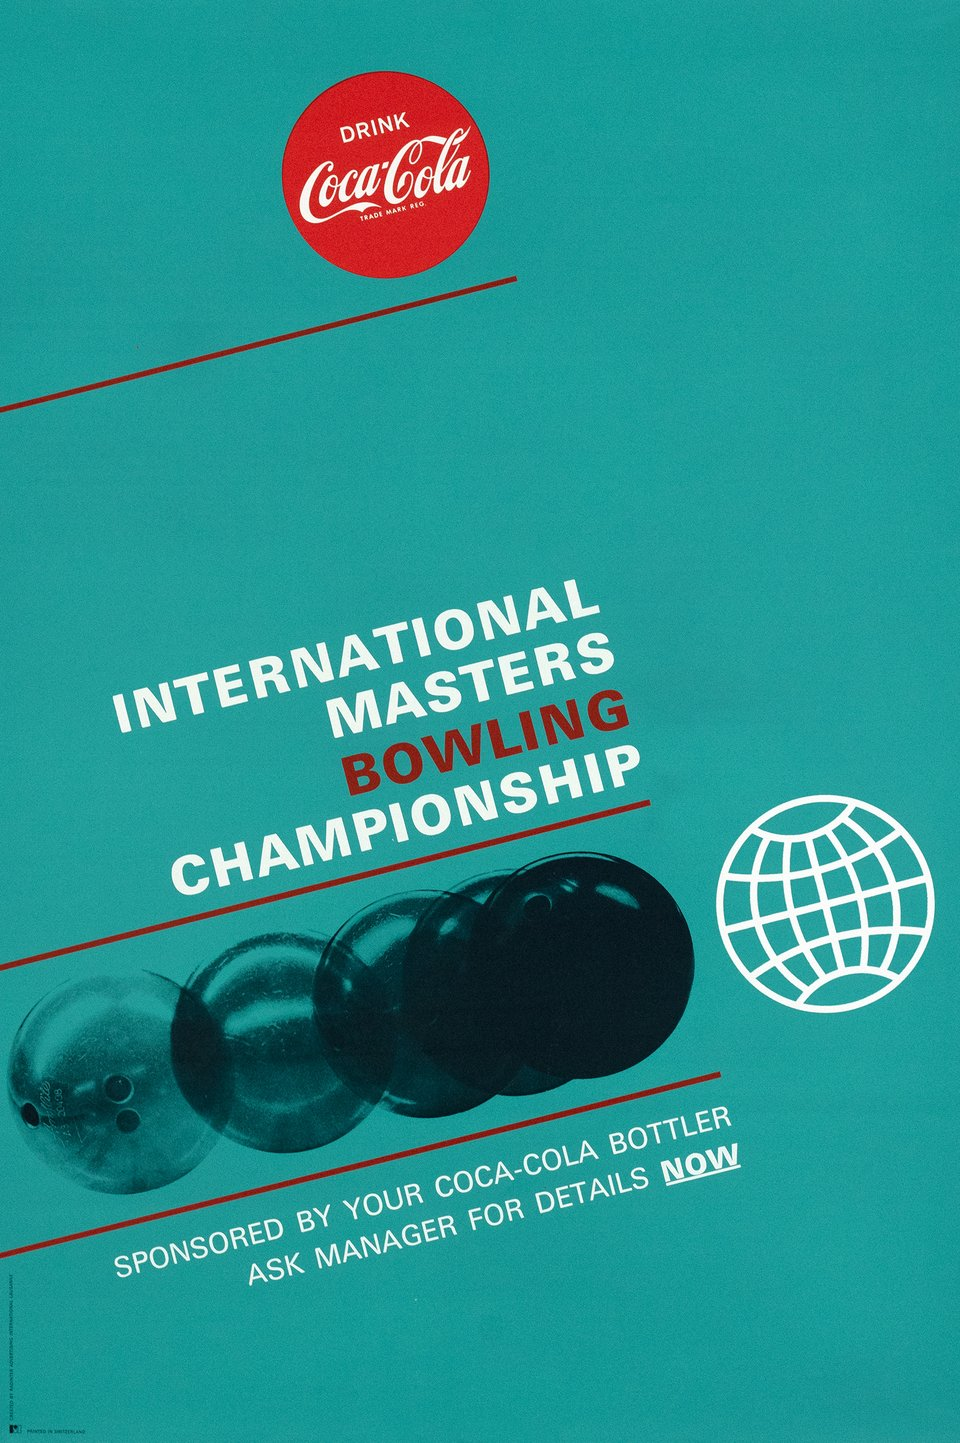 International Masters Bowling Championship, Sponsored by your Coca-Cola Bottler – Vintage poster – RADINTER ADVERTISING INTERNATIONAL, LAUSANNE – 1970